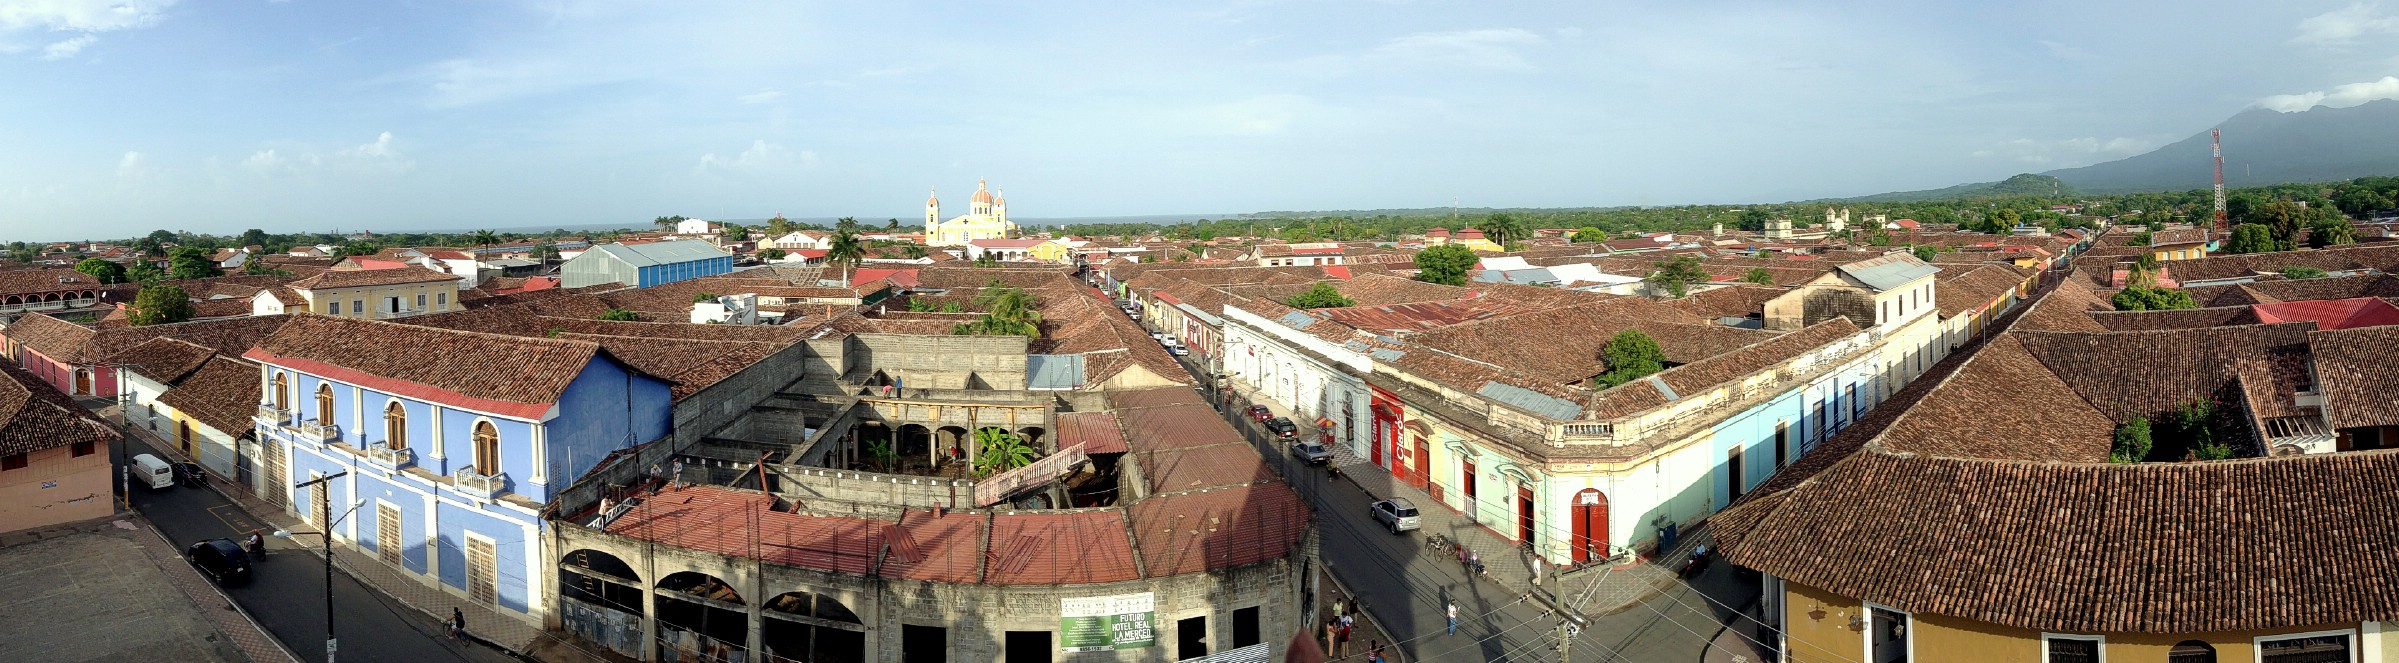 An iPod panorama of Granada as seen from the bell tower of Iglesia de la Merced, Granada, Nicaragua. June 18th 2013.